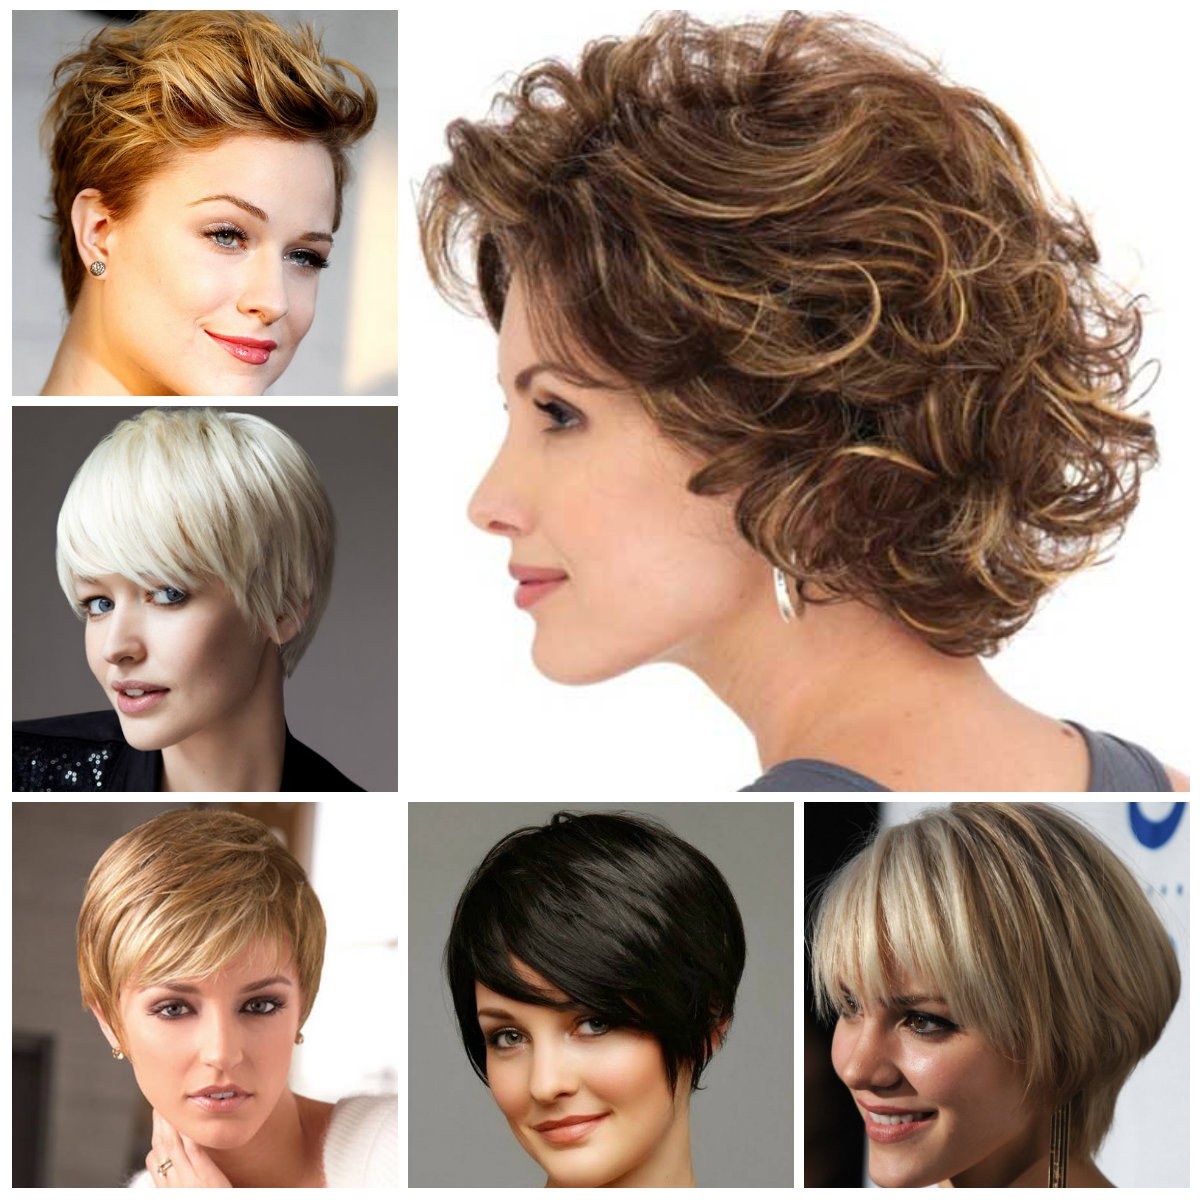 Short Layered Hairstyle Ideas For 2019 | Hairstyles For Women 2019 Regarding Long Messy Curly Pixie Haircuts (View 24 of 25)